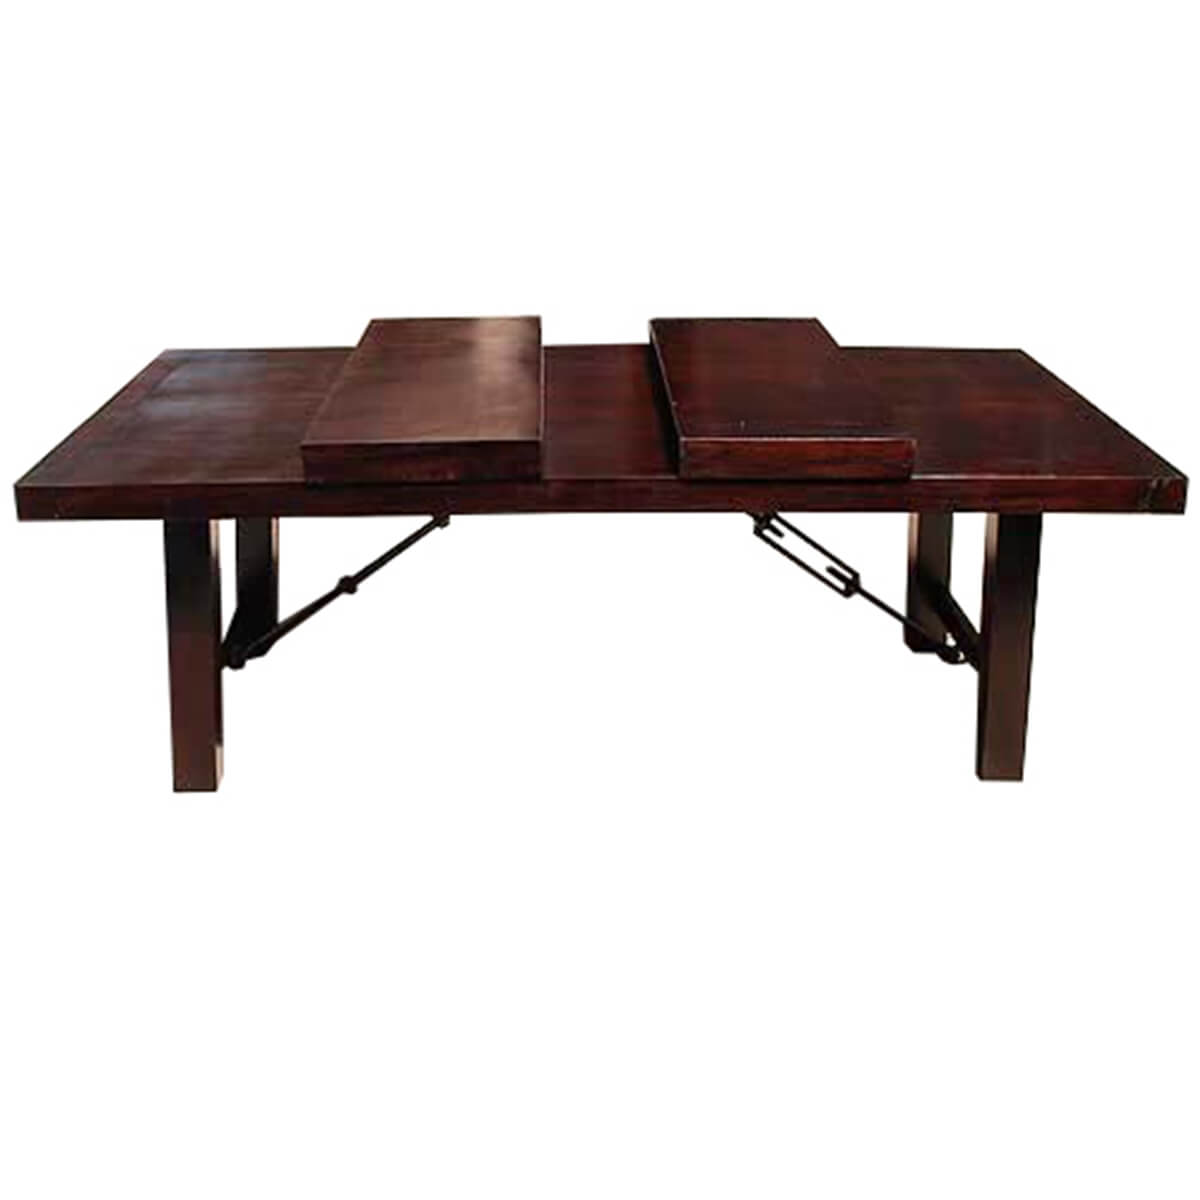 Nottingham Rustic Furniture Wood Dining Table amp Chair Set  : 15973 from www.sierralivingconcepts.com size 1200 x 1200 jpeg 133kB